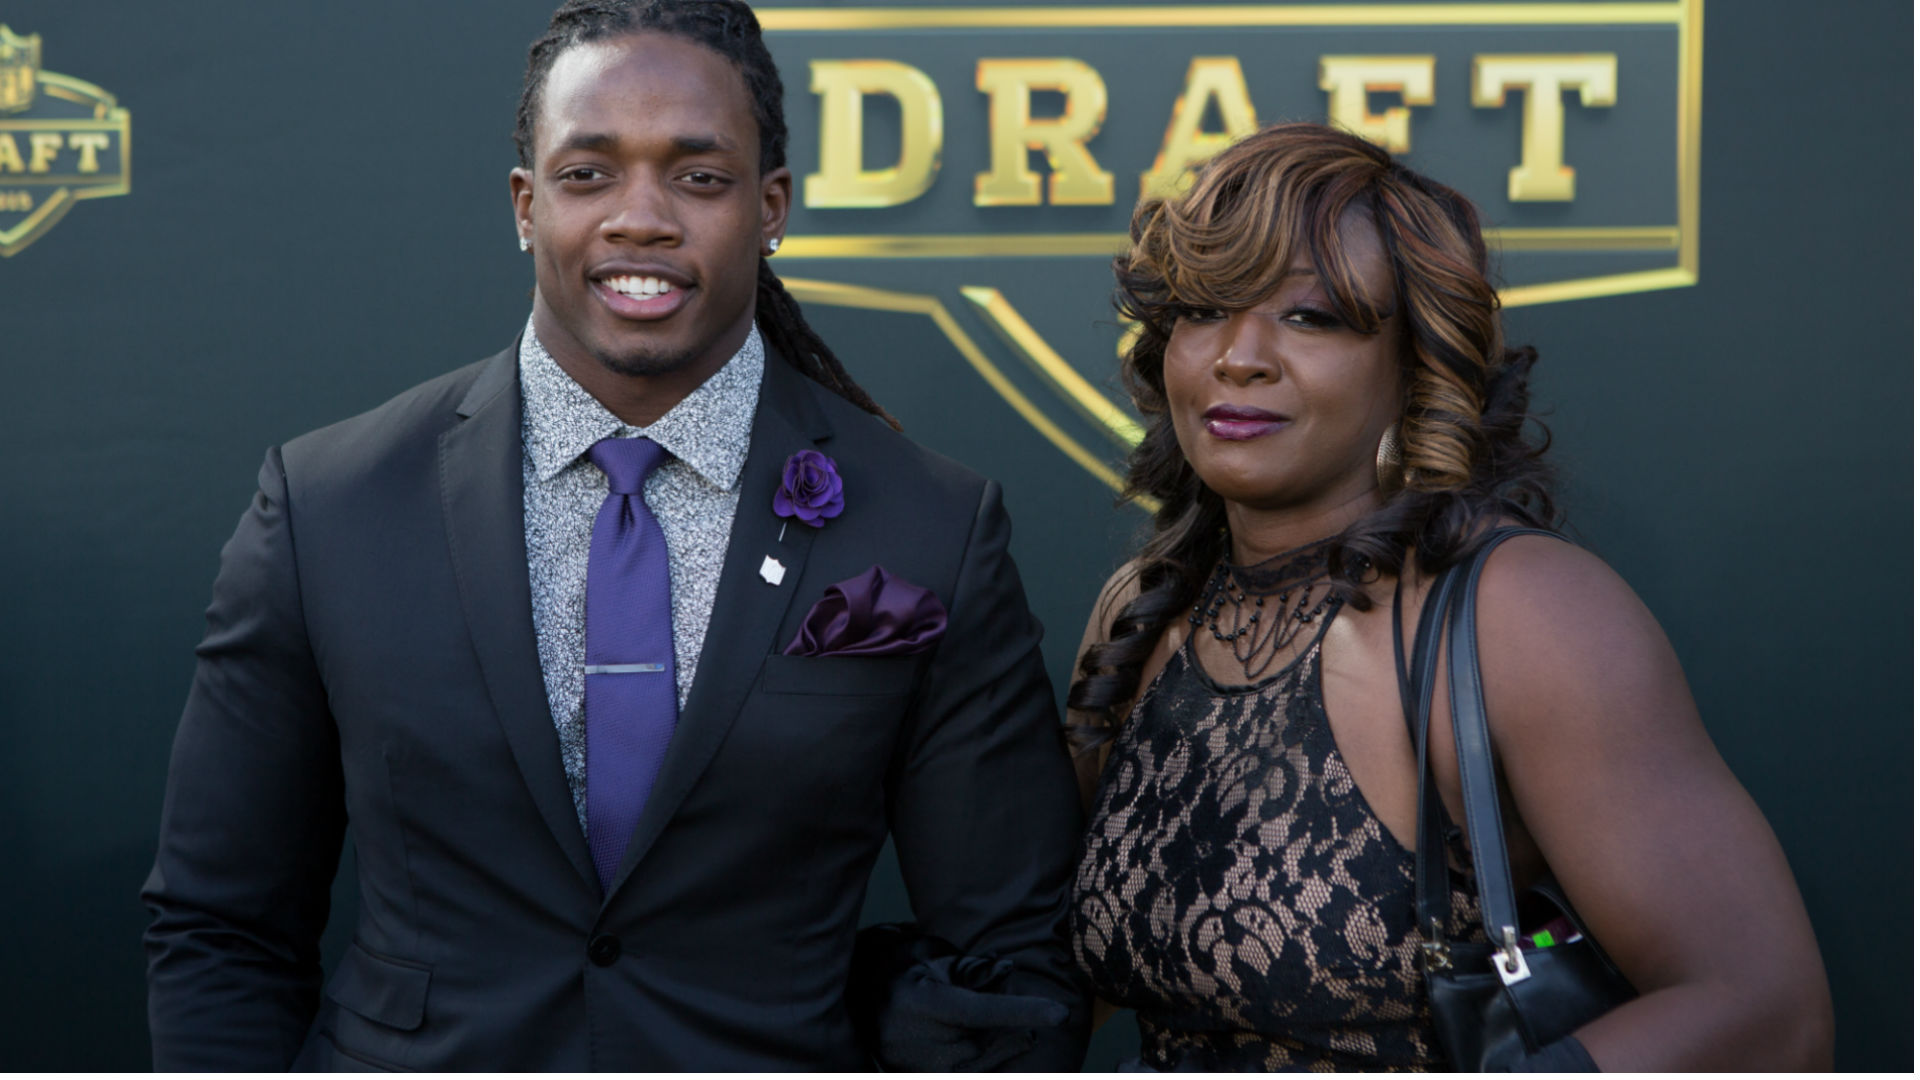 Melvin Gordon's mom won't wear his jersey until he earns it